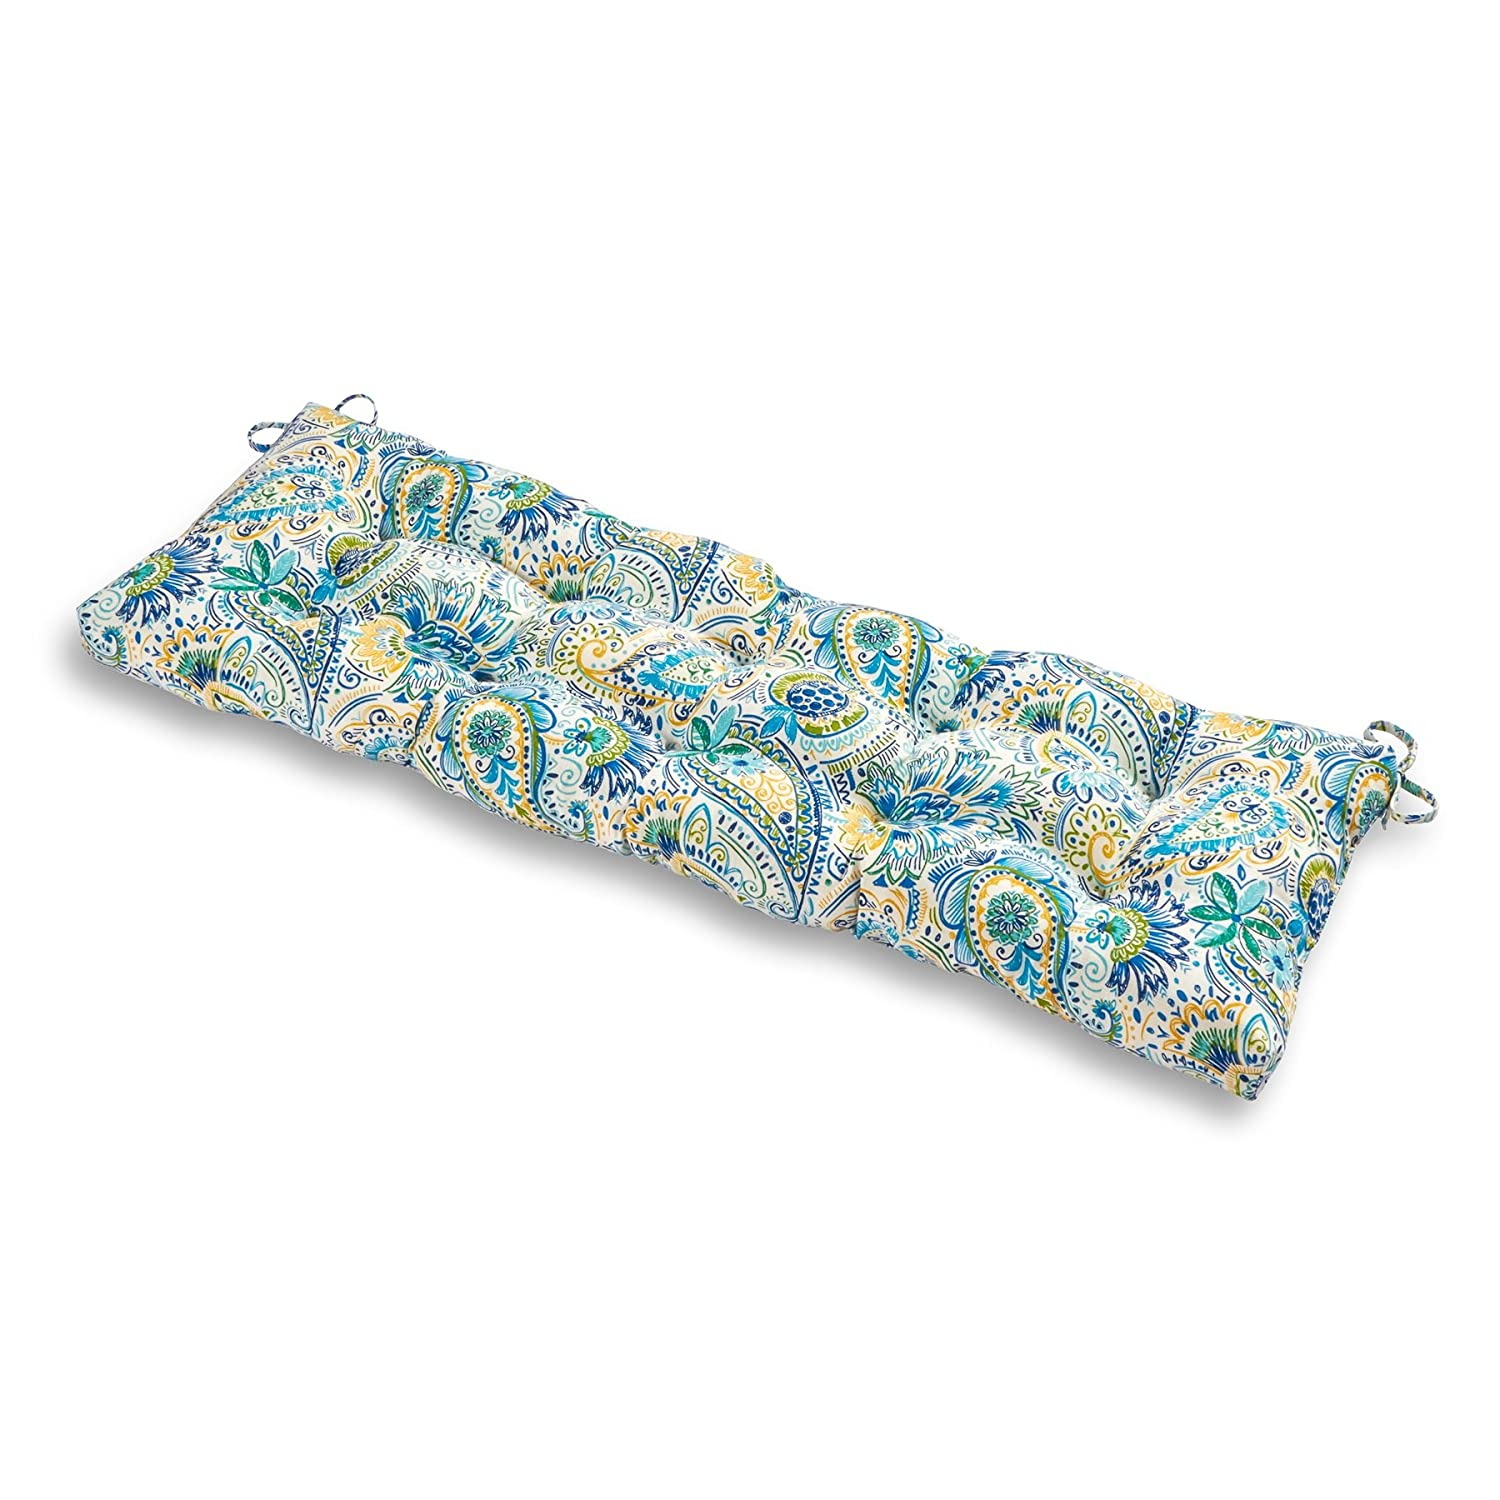 Greendale Home Fashions Outdoor 51-inch Bench Cushion in Painted Paisley, Baltic